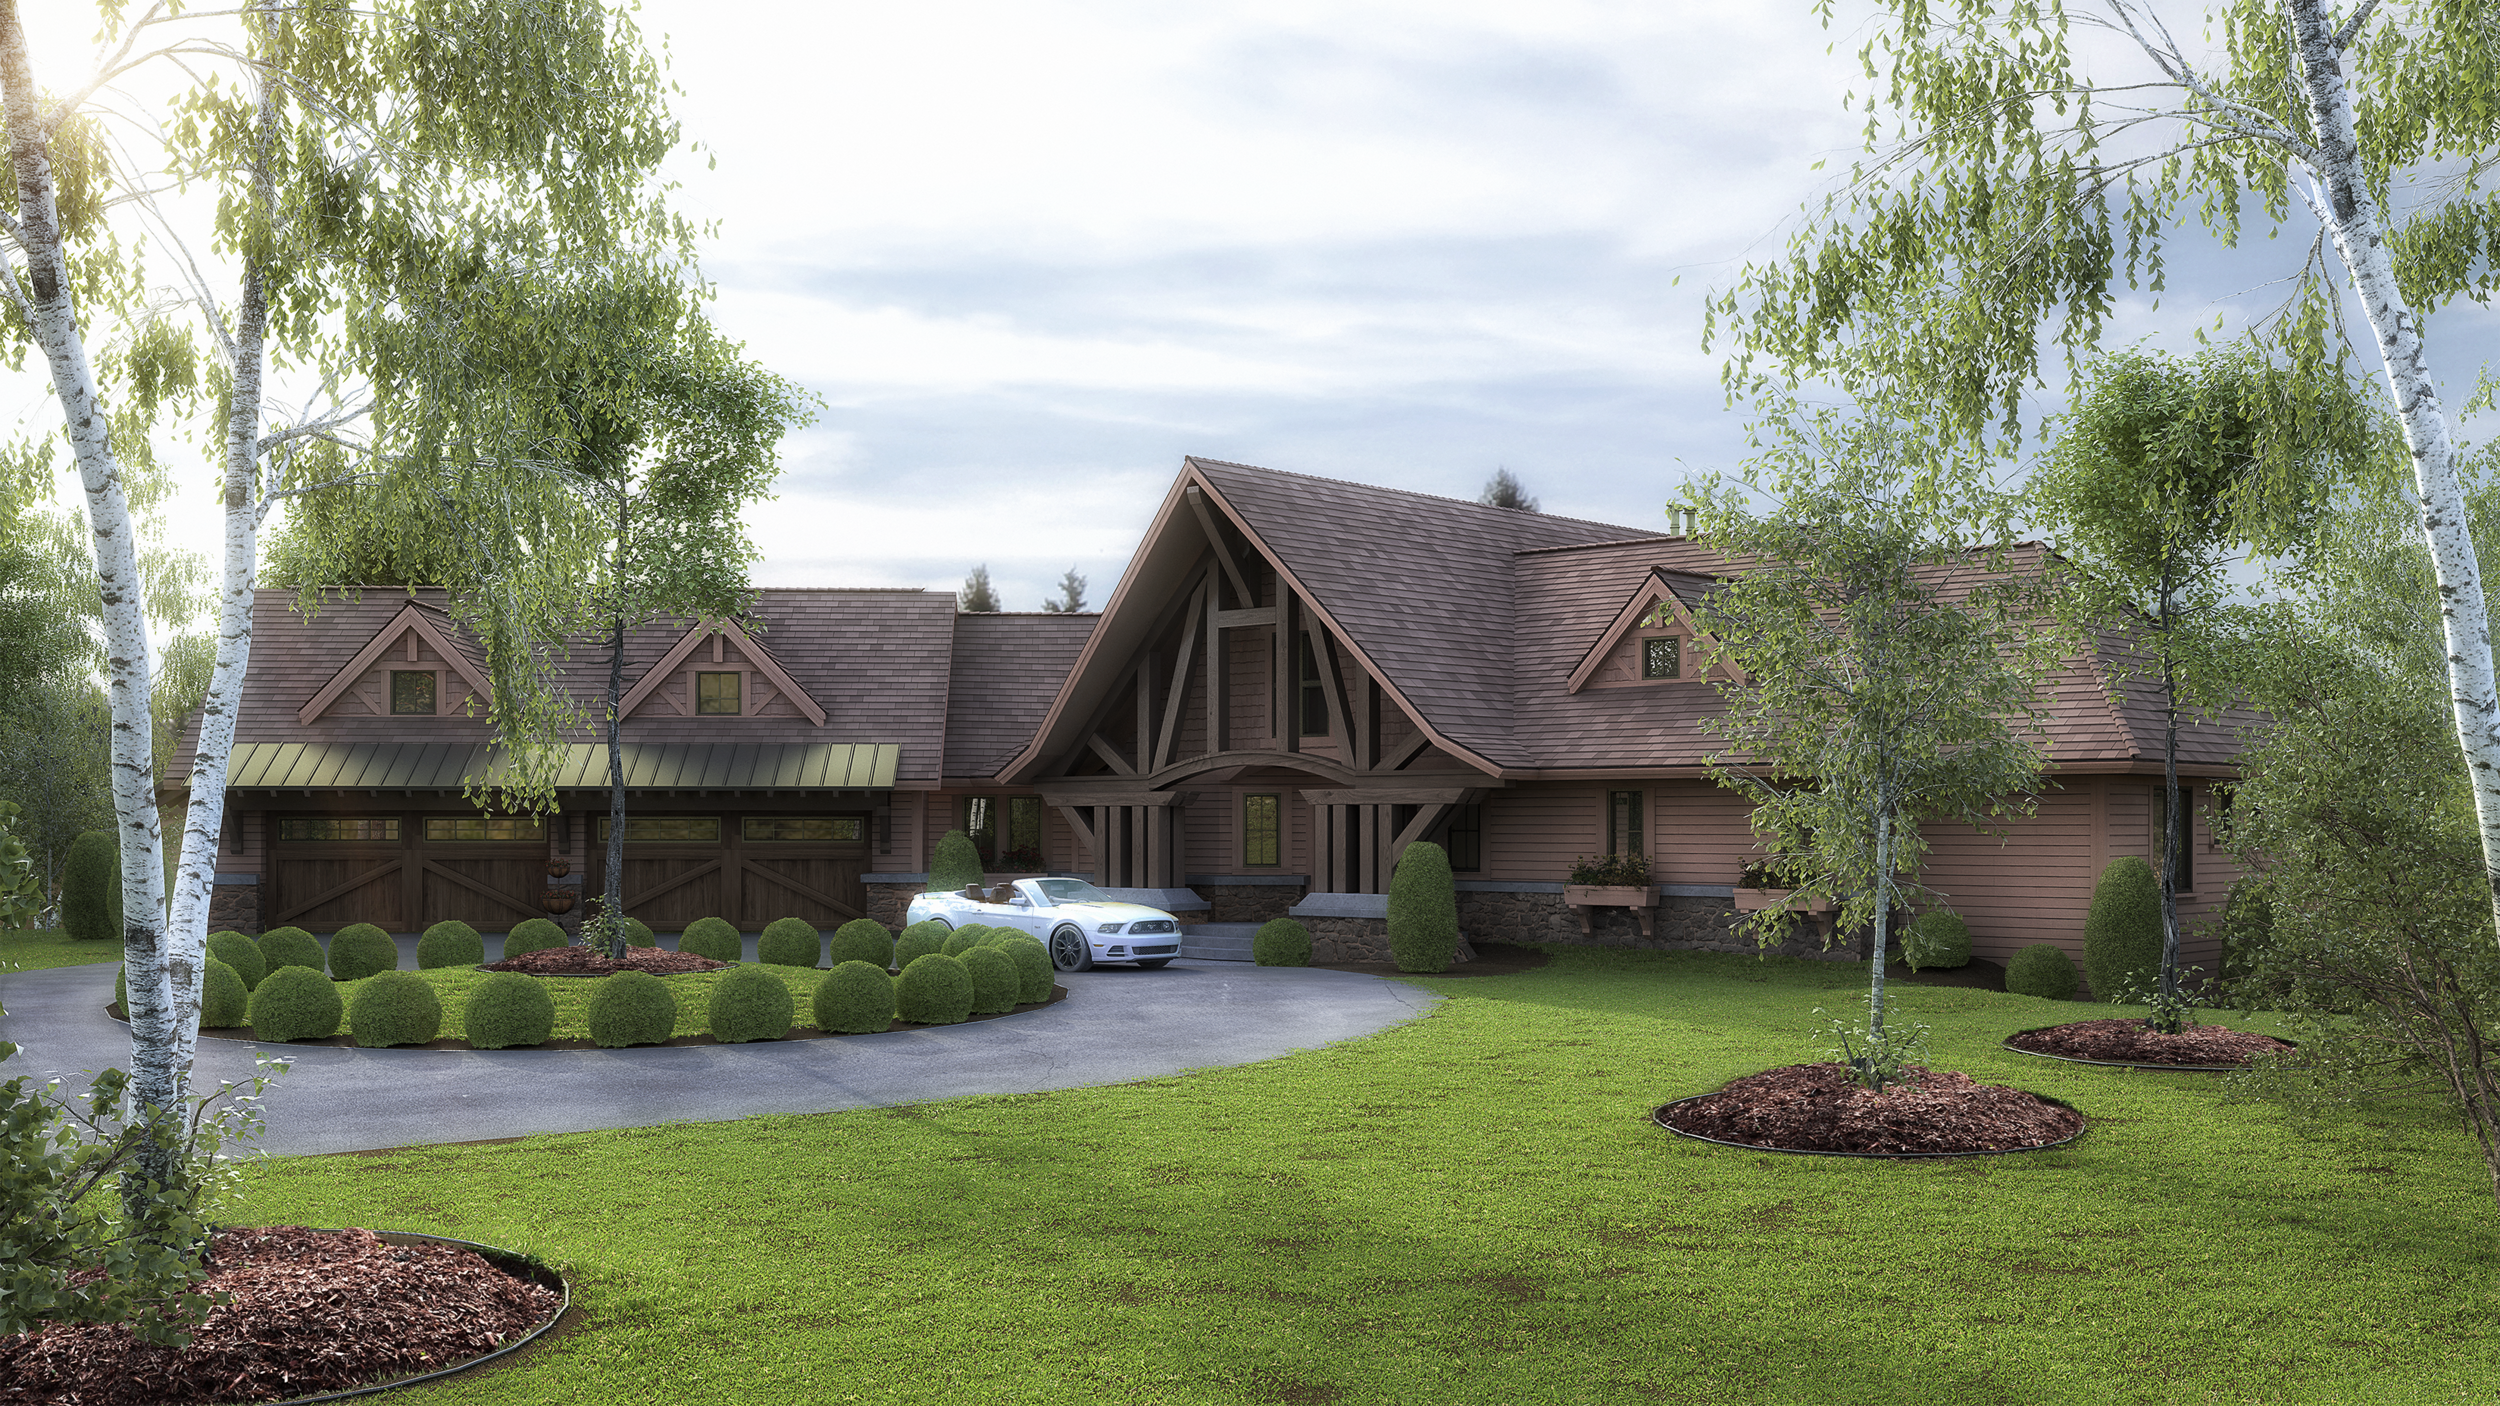 3D Rendering of a Custom Home